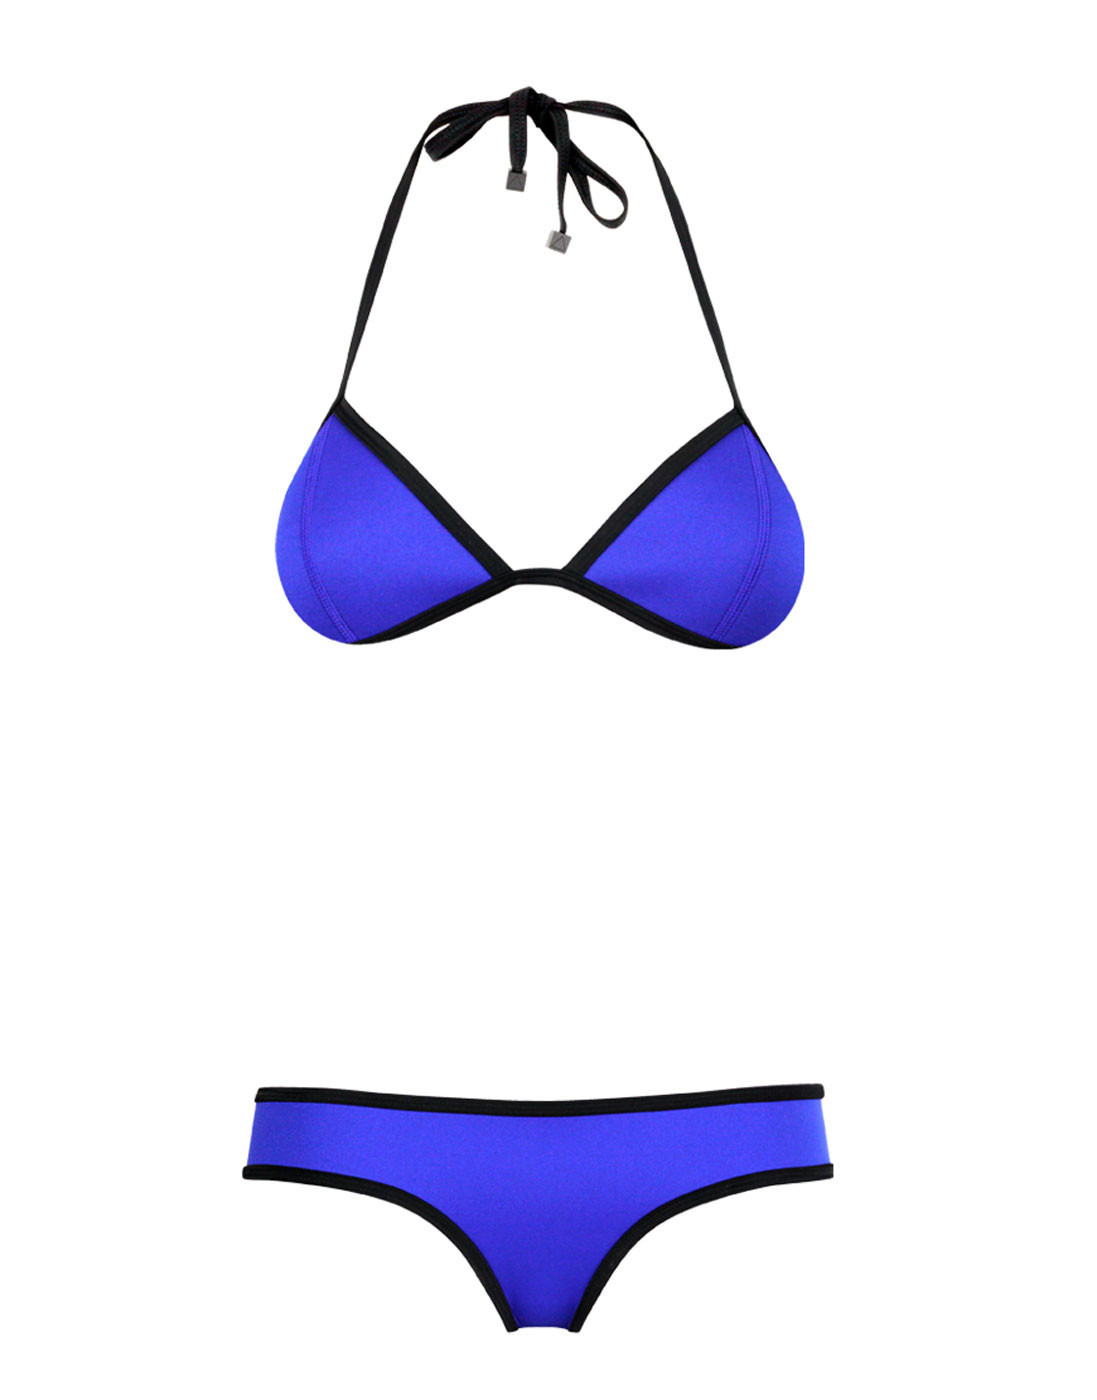 MALIBU BLUE – Triangl